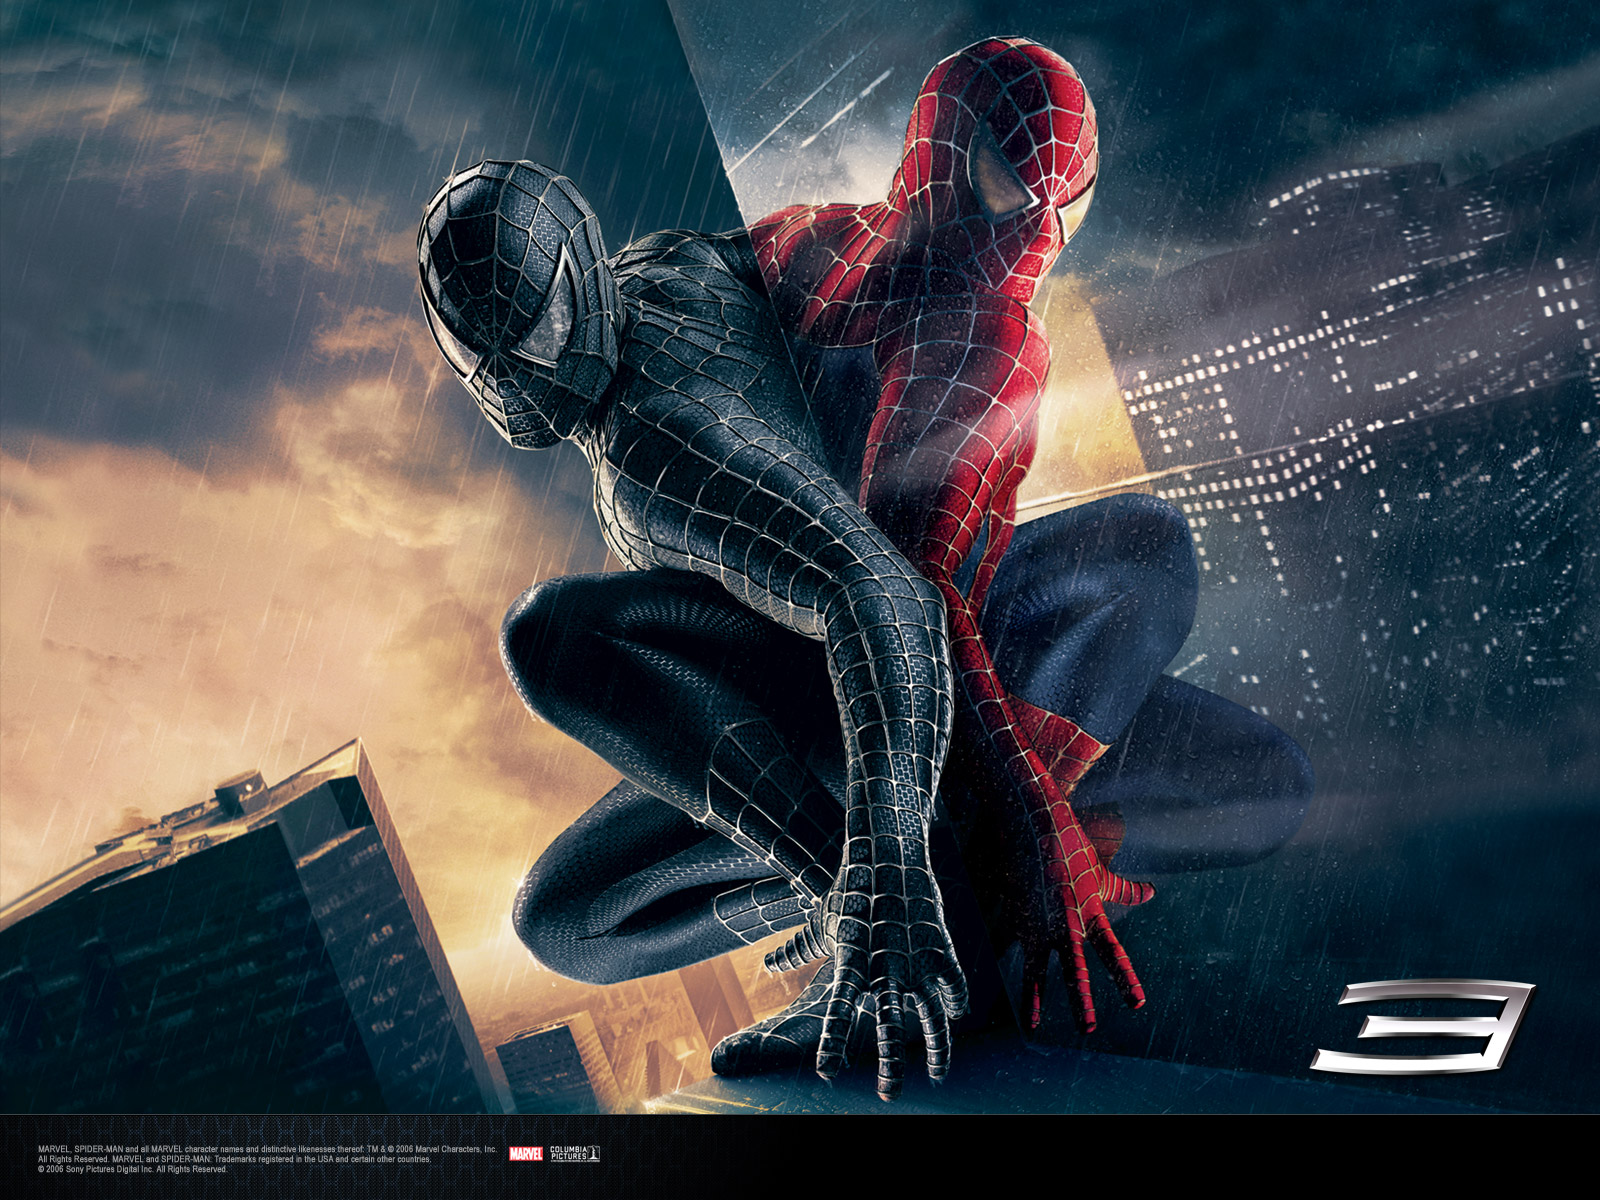 Wallpaper Peter Parker bon vs mauvais Spiderman